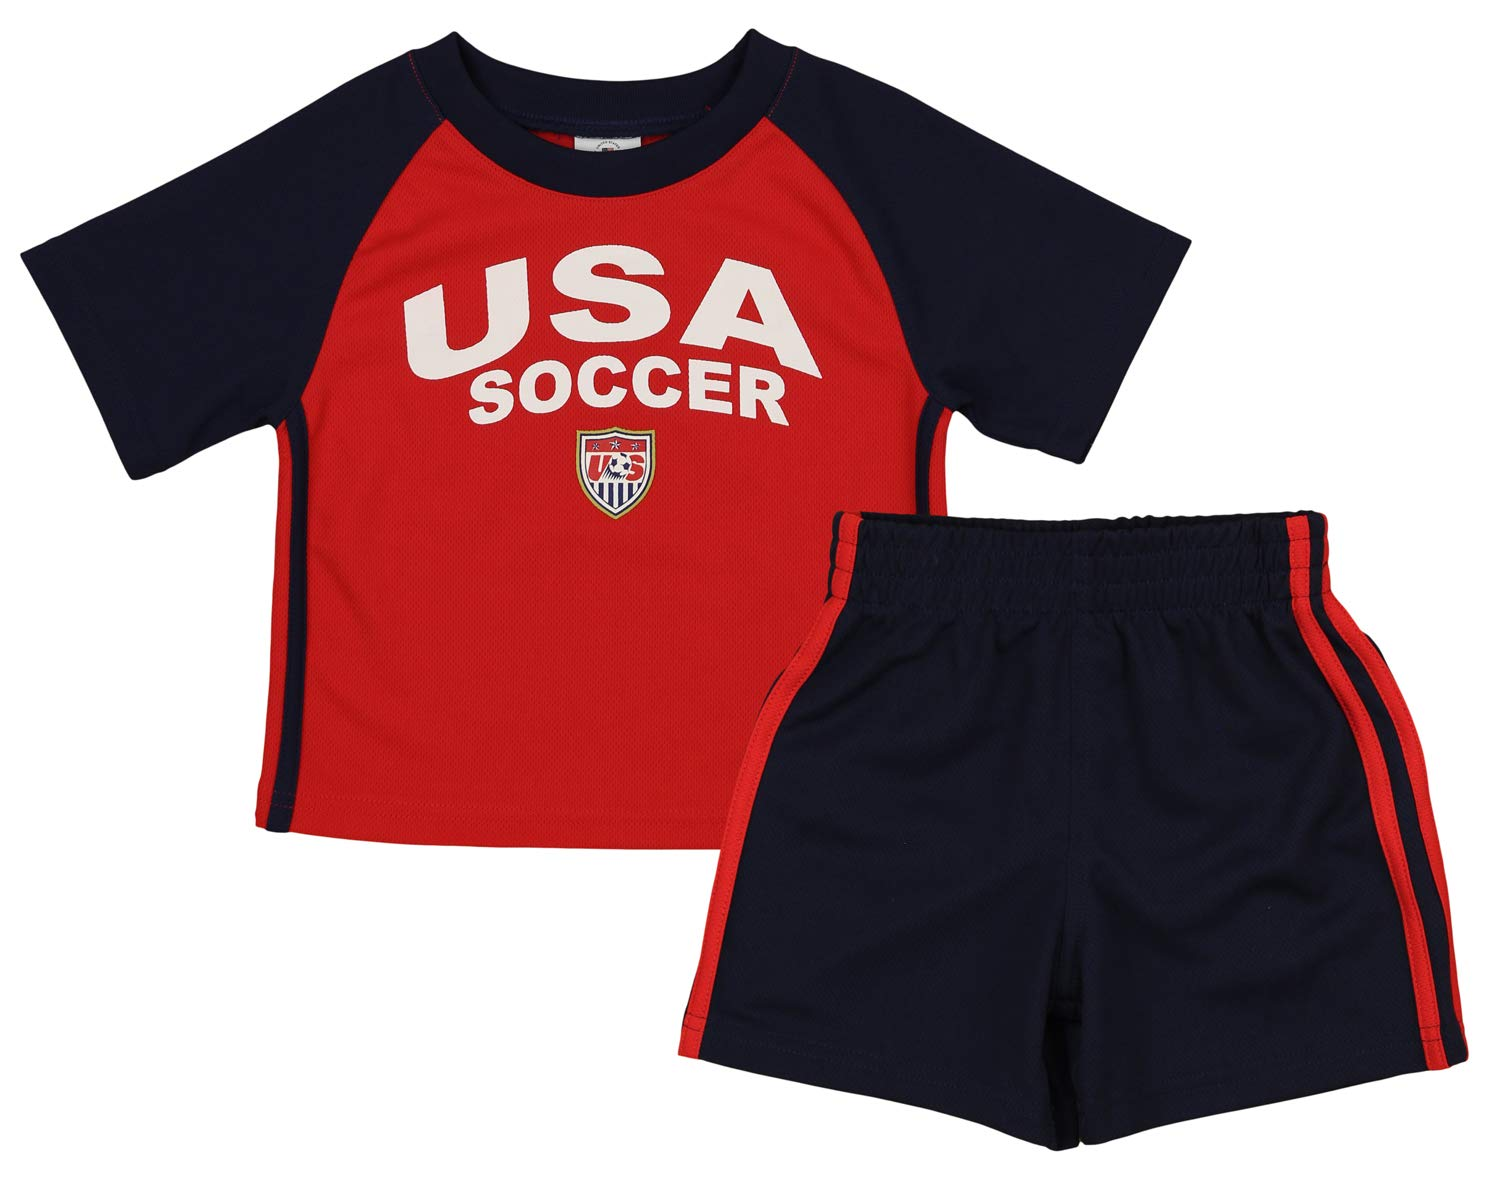 Outerstuff MLS 幼児 USA チームパフォーマンスシャツ&ショーツセット 2T  B07JZK5WPW